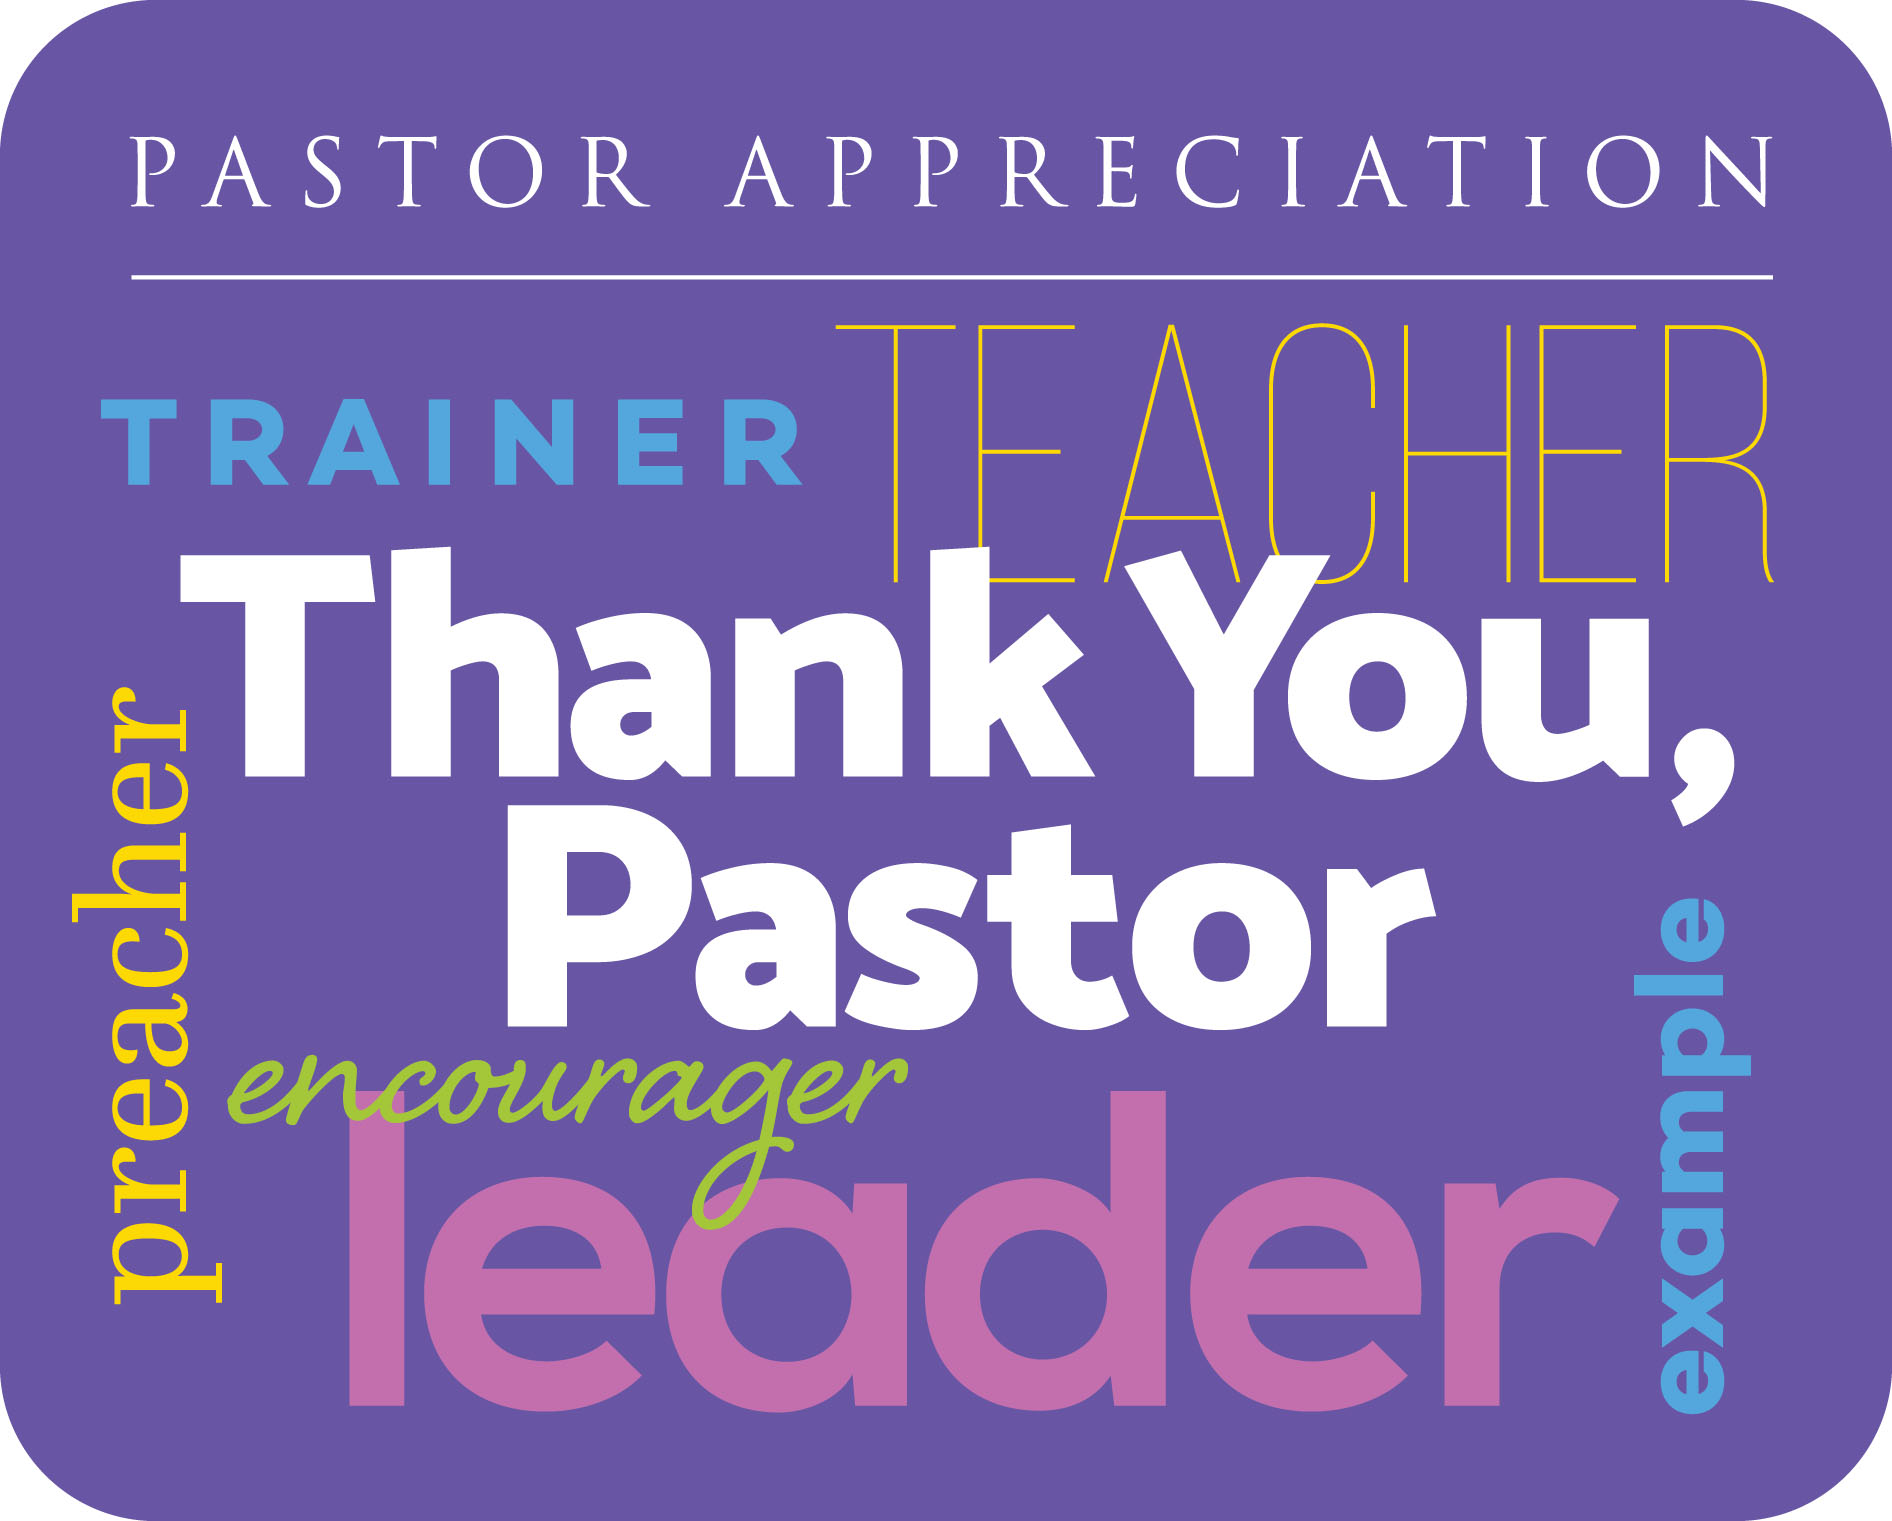 pastor appreciation Pastor appreciation, cleveland, tennessee 1,559 likes 3 were here pastor appreciation day resources the official date for pastor appreciation day in.